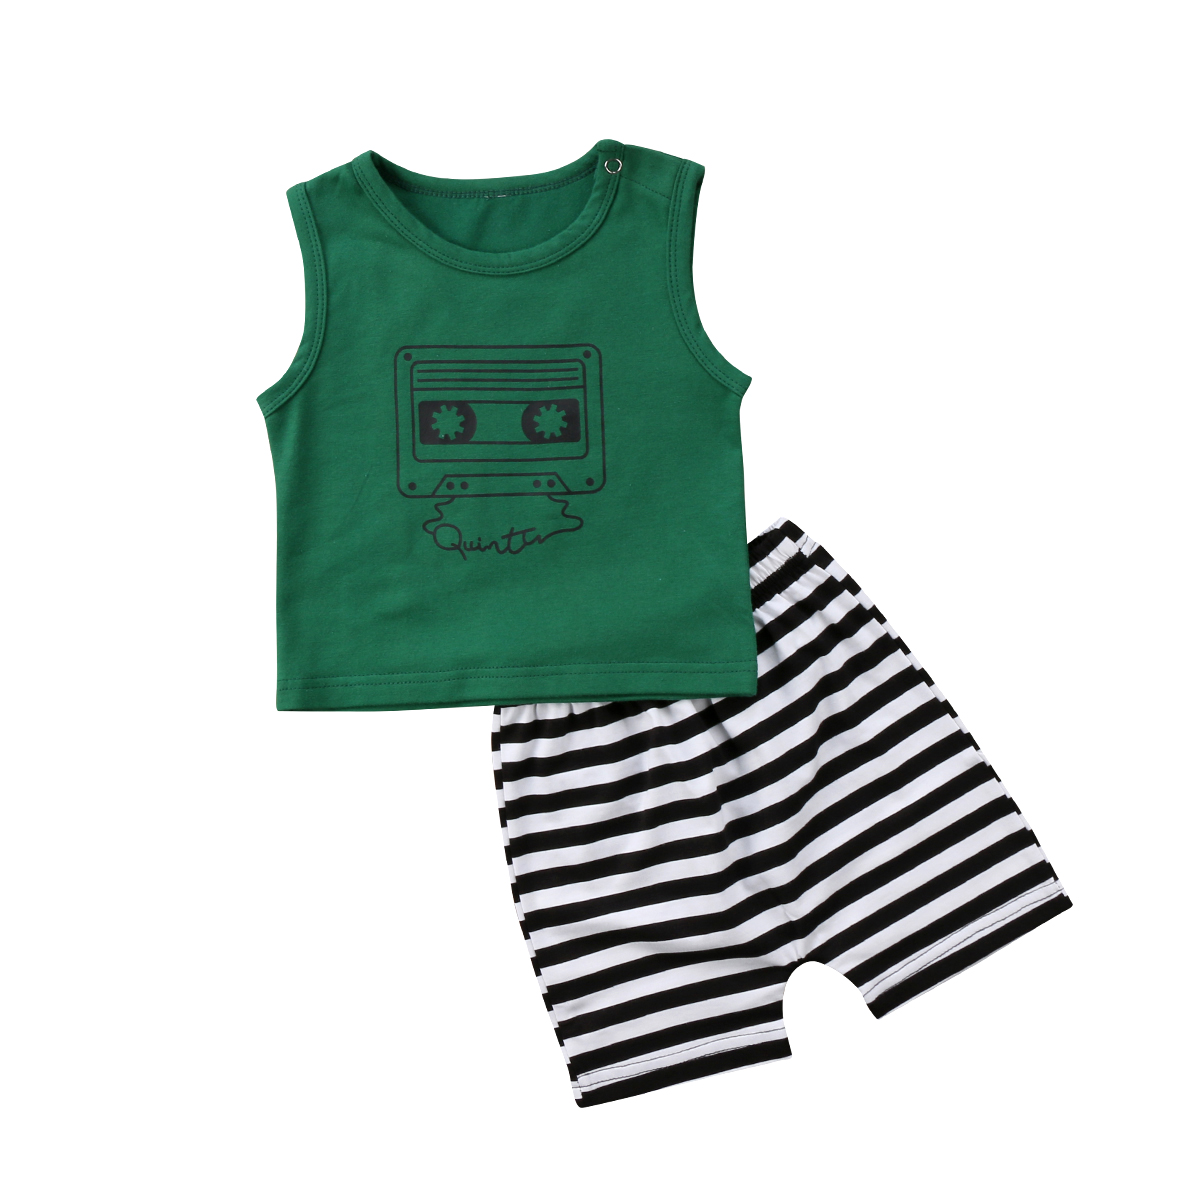 2pcs Newborn Baby Boys Girls Kids Green Sleeveless T-shirt Tops+ Short Black White Striped Pants Trousers Outfit Clothes Set newborn baby kids boys tops cool letter printing i do what i want sleeveless t shirt vest short pants 2pcs outfits set clothes